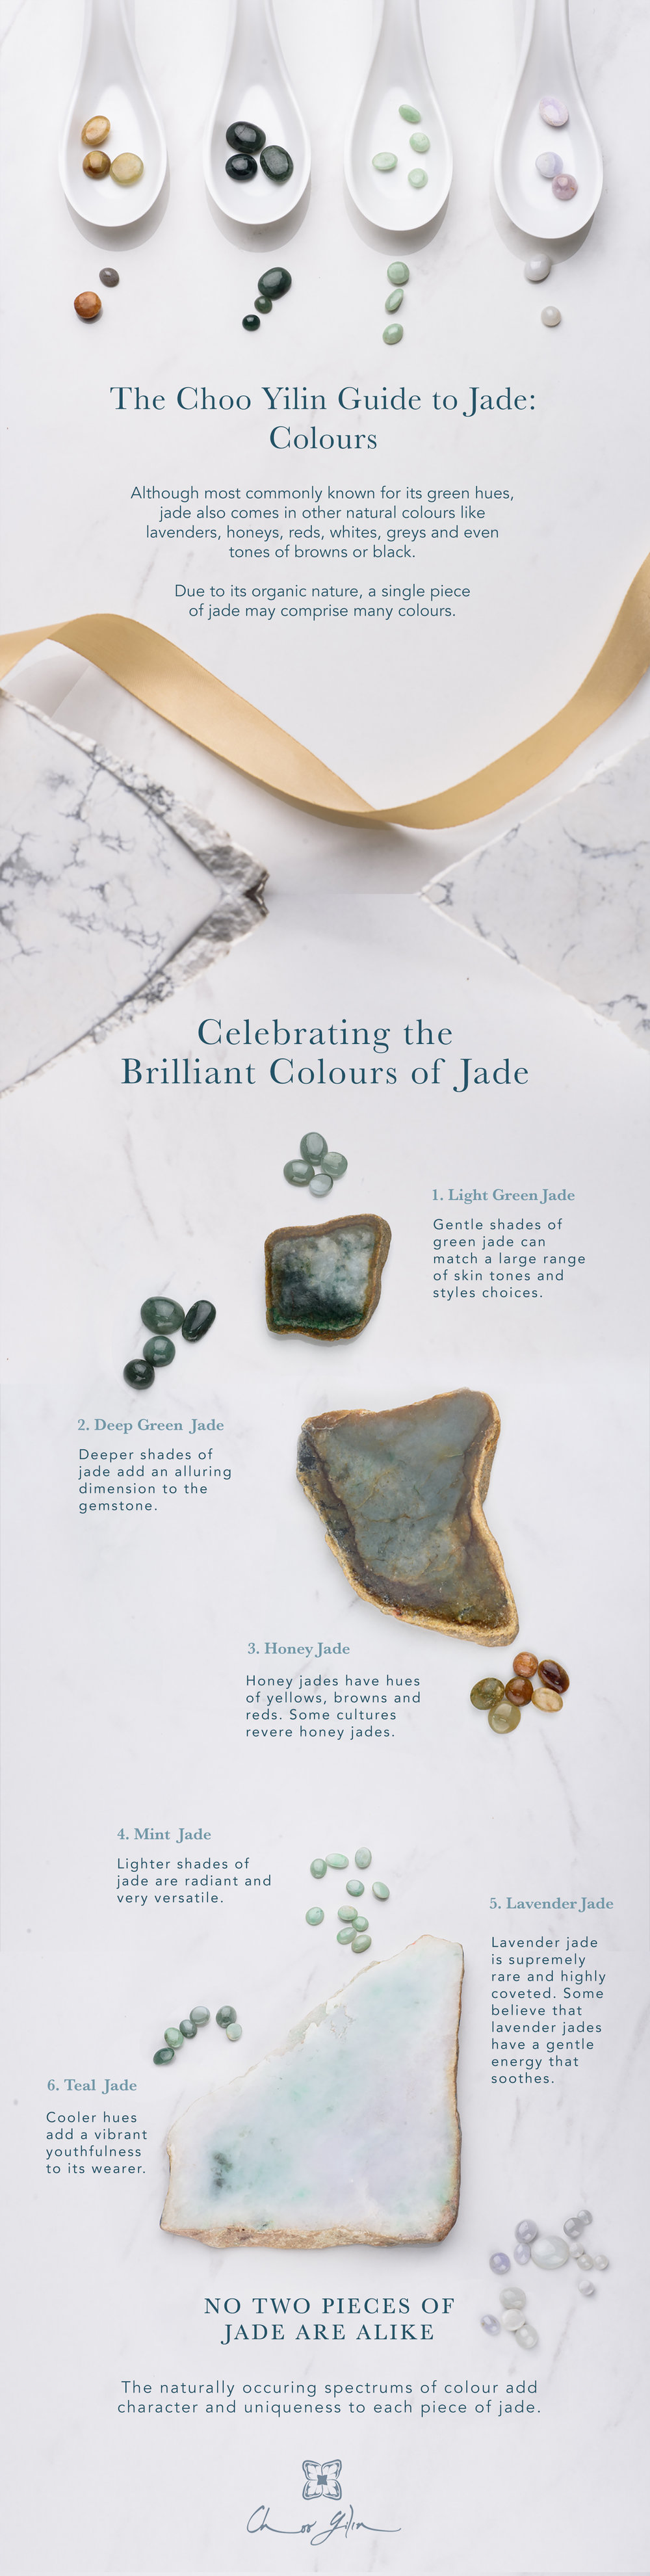 The Choo Yilin Guide to Jade: Colours. Although most commonly known for its green hues, jade also comes in other natural colours like lavenders, honeys, reds, whites, greys and even tones of browns or black.   Due to its organic nature, a single piece of jade may comprise many colours. Celebrating the Brilliant Colours of Jade. Light Green Jade. Gentle shades of green jade can match a large range of skin tones and styles choices. Deep Green Jade: Deeper shades of jade add an alluring dimension to the gemstone. Honey Jade. Honey jades have hues of yellows, browns and reds. Some cultures revere honey jades. Mint Jade. Lighter shades of jade are radiant and very versatile. Lavender Jade. Lavender jade is supremely rare and highly coveted. Some believe that lavender jades have a gentle energy that soothes. Teal Jade. Cooler hues add a vibrant youthfulness to its wearer. NO TWO PIECES OF JADE ARE ALIKE The naturally occuring spectrums of colour add character and uniqueness to each piece of jade.